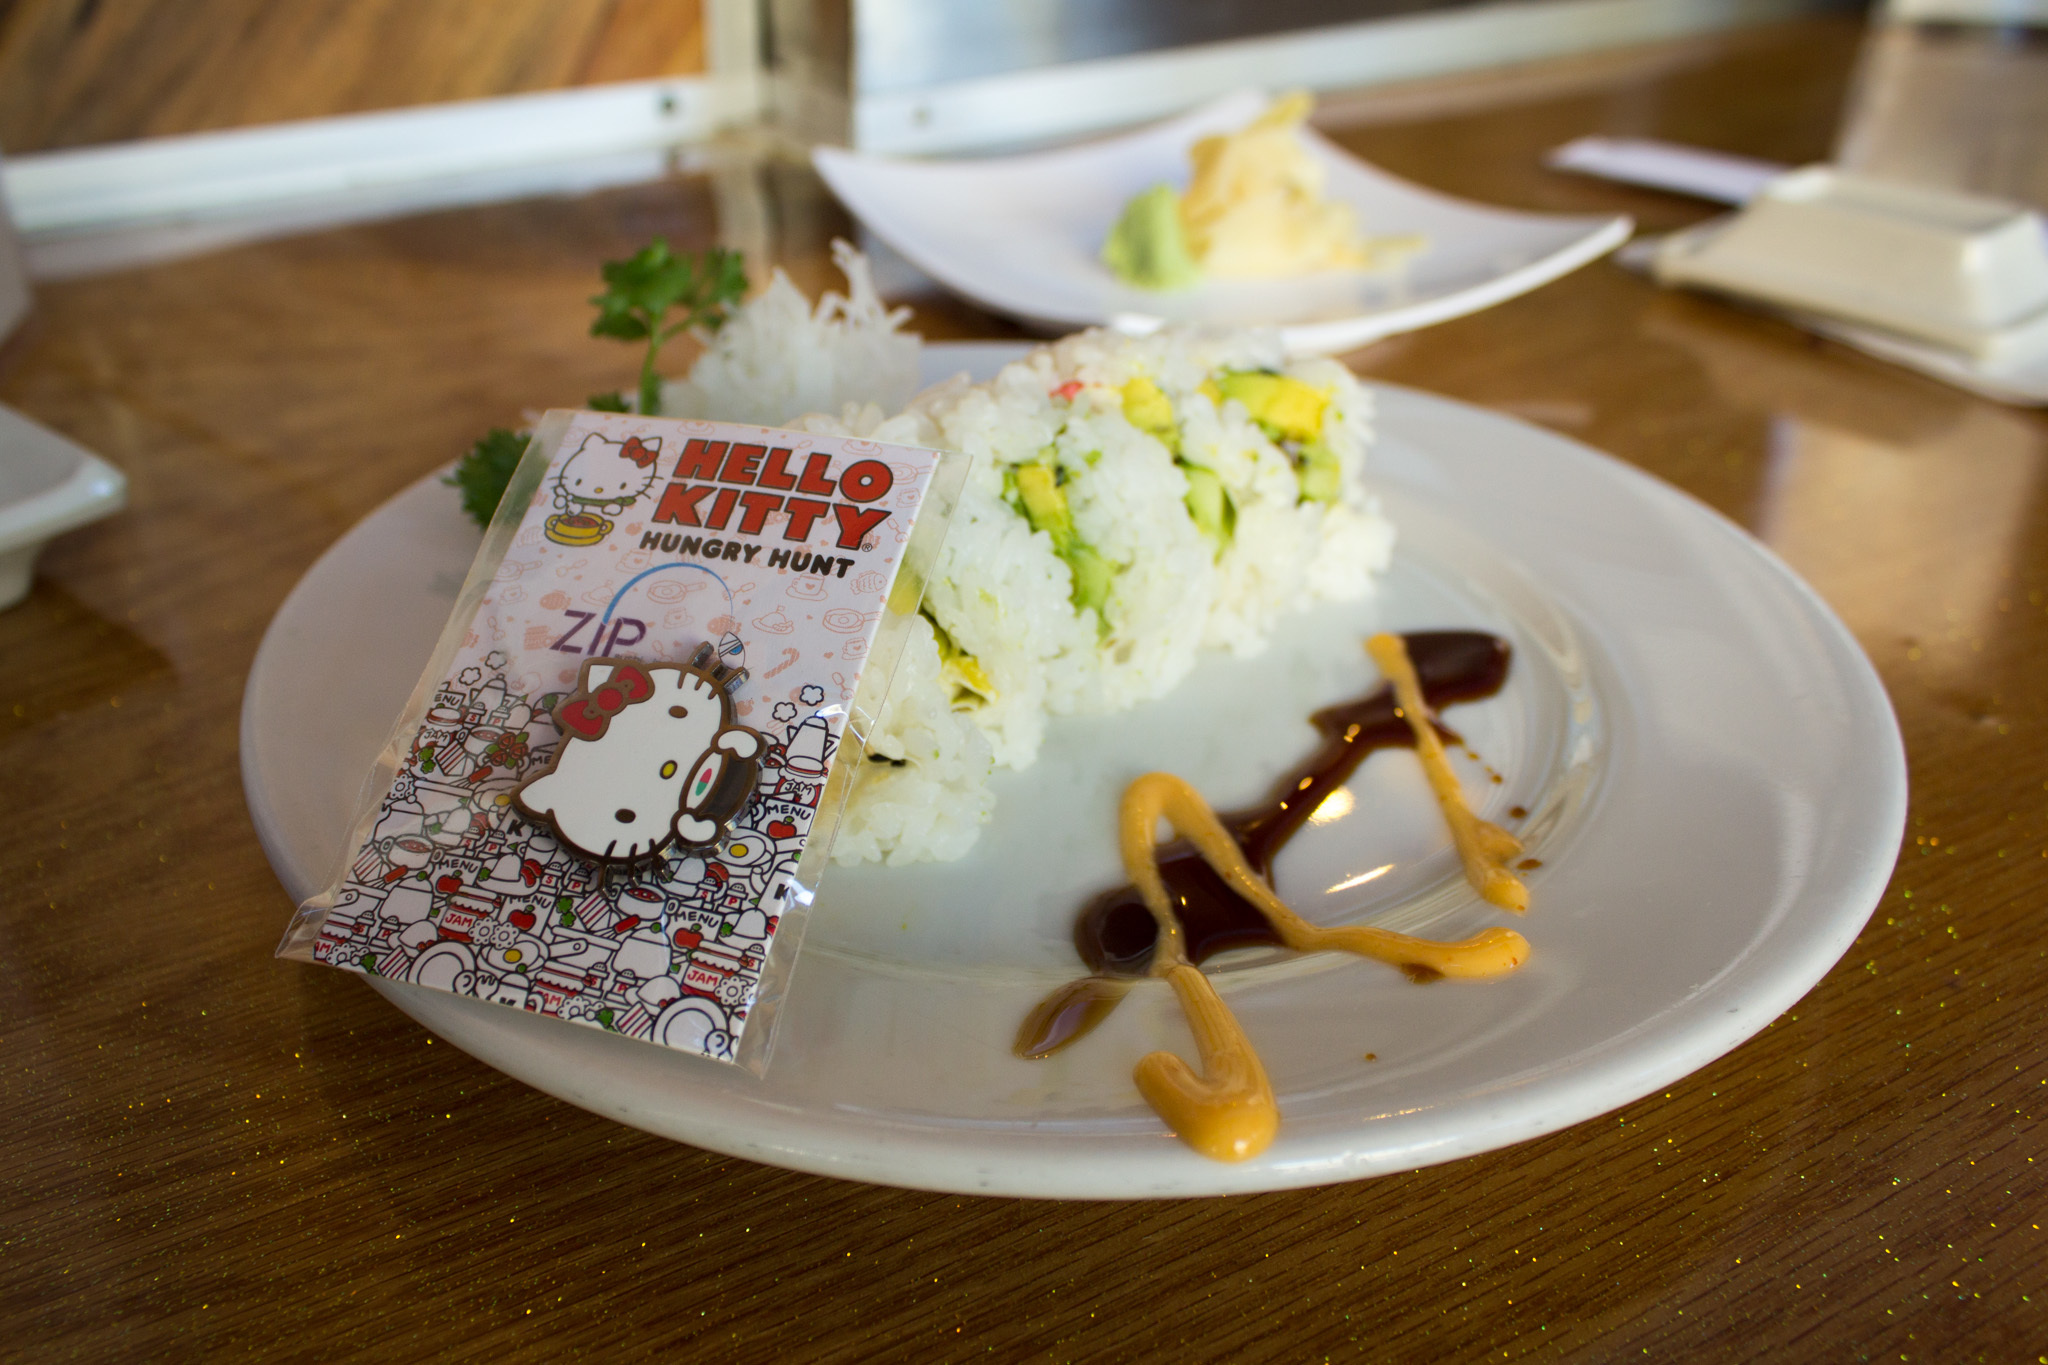 Hello Kitty Hungry Hunt at Zip Sushi & Izakaya.